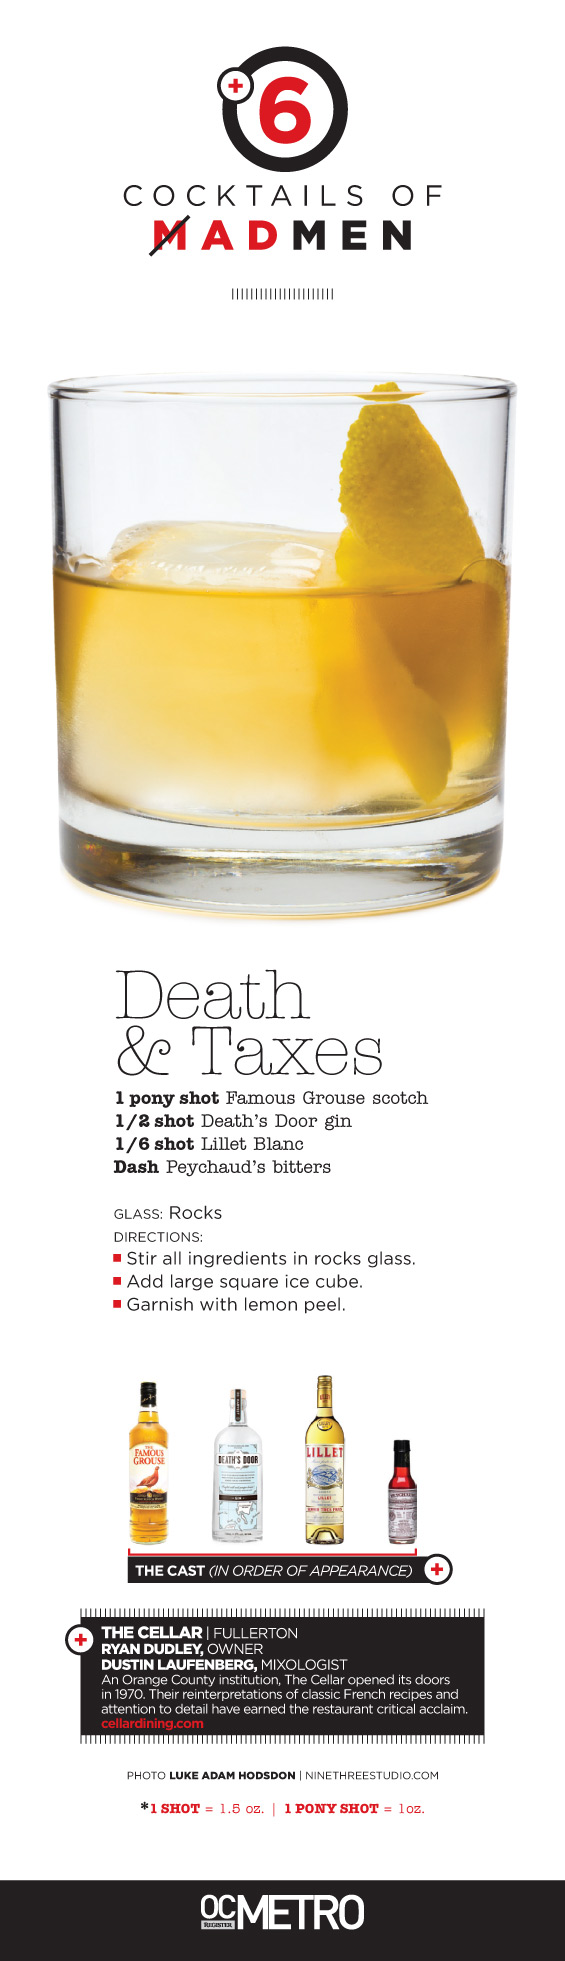 Death and Taxes cocktail made with gin, scotch and lillet blanc by Ryan Dudley at The Cellar in Fullerton. OC Register Metro #magazine Mad Men inspired cover story | #photo by Luke Adam Hodsdon